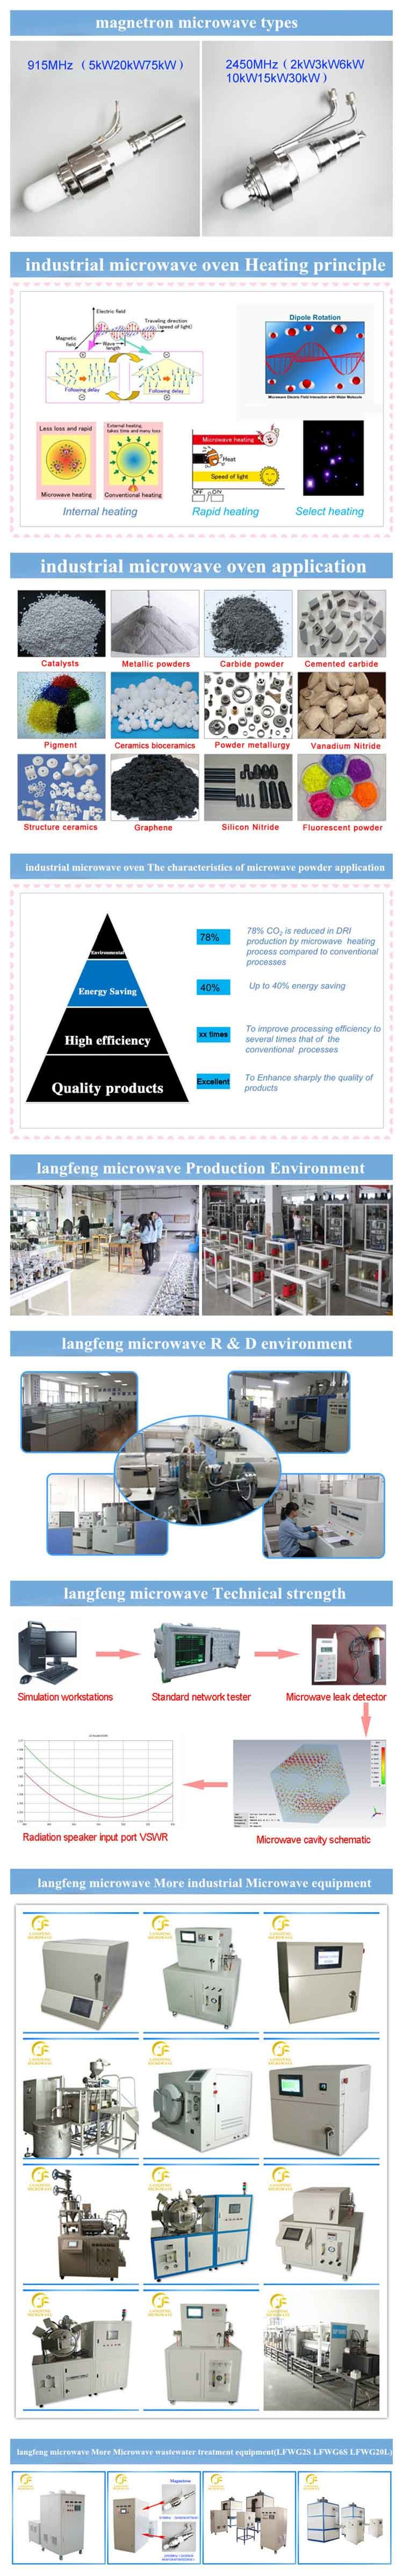 Sewage Treatment Investment Units of Low Intensity